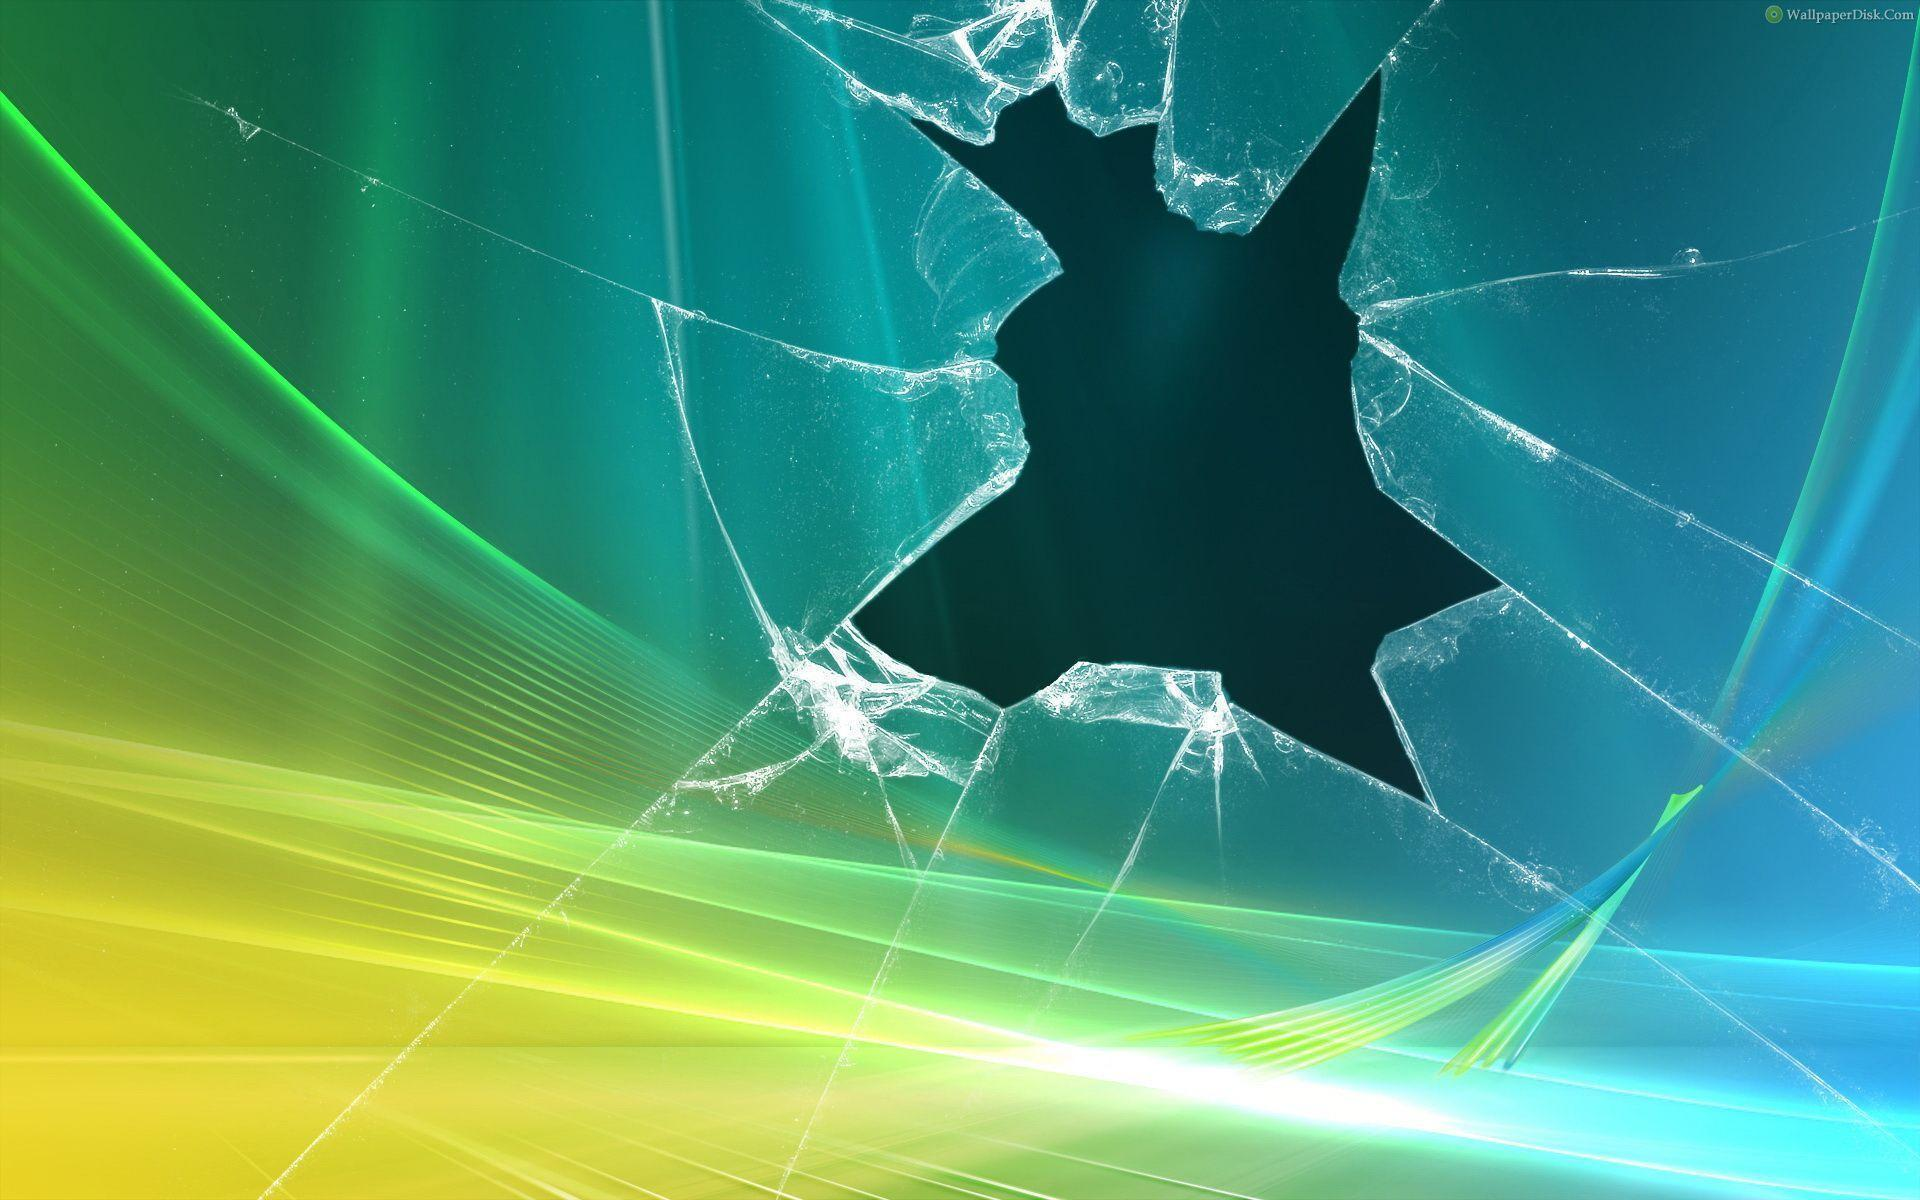 Related Pictures More Broken Cracked Screen Please Hd Wallpapers